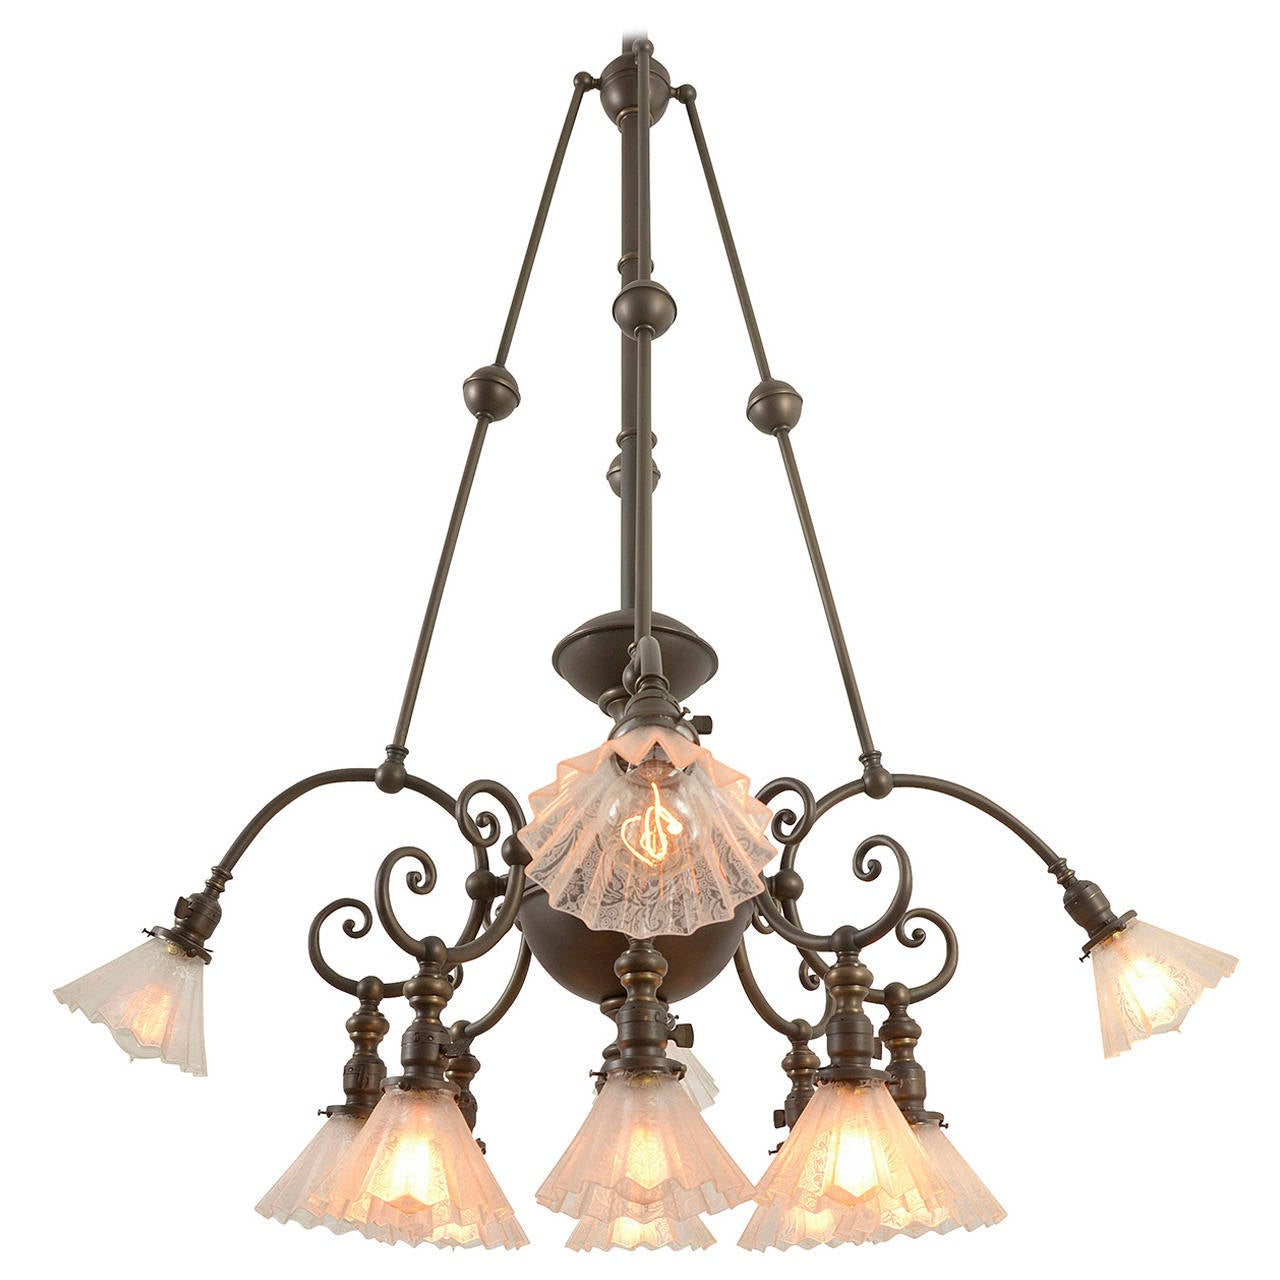 Rare and remarkable twelve light commercial chandelier circa 1905 rare and remarkable twelve light commercial chandelier circa 1905 1 arubaitofo Choice Image